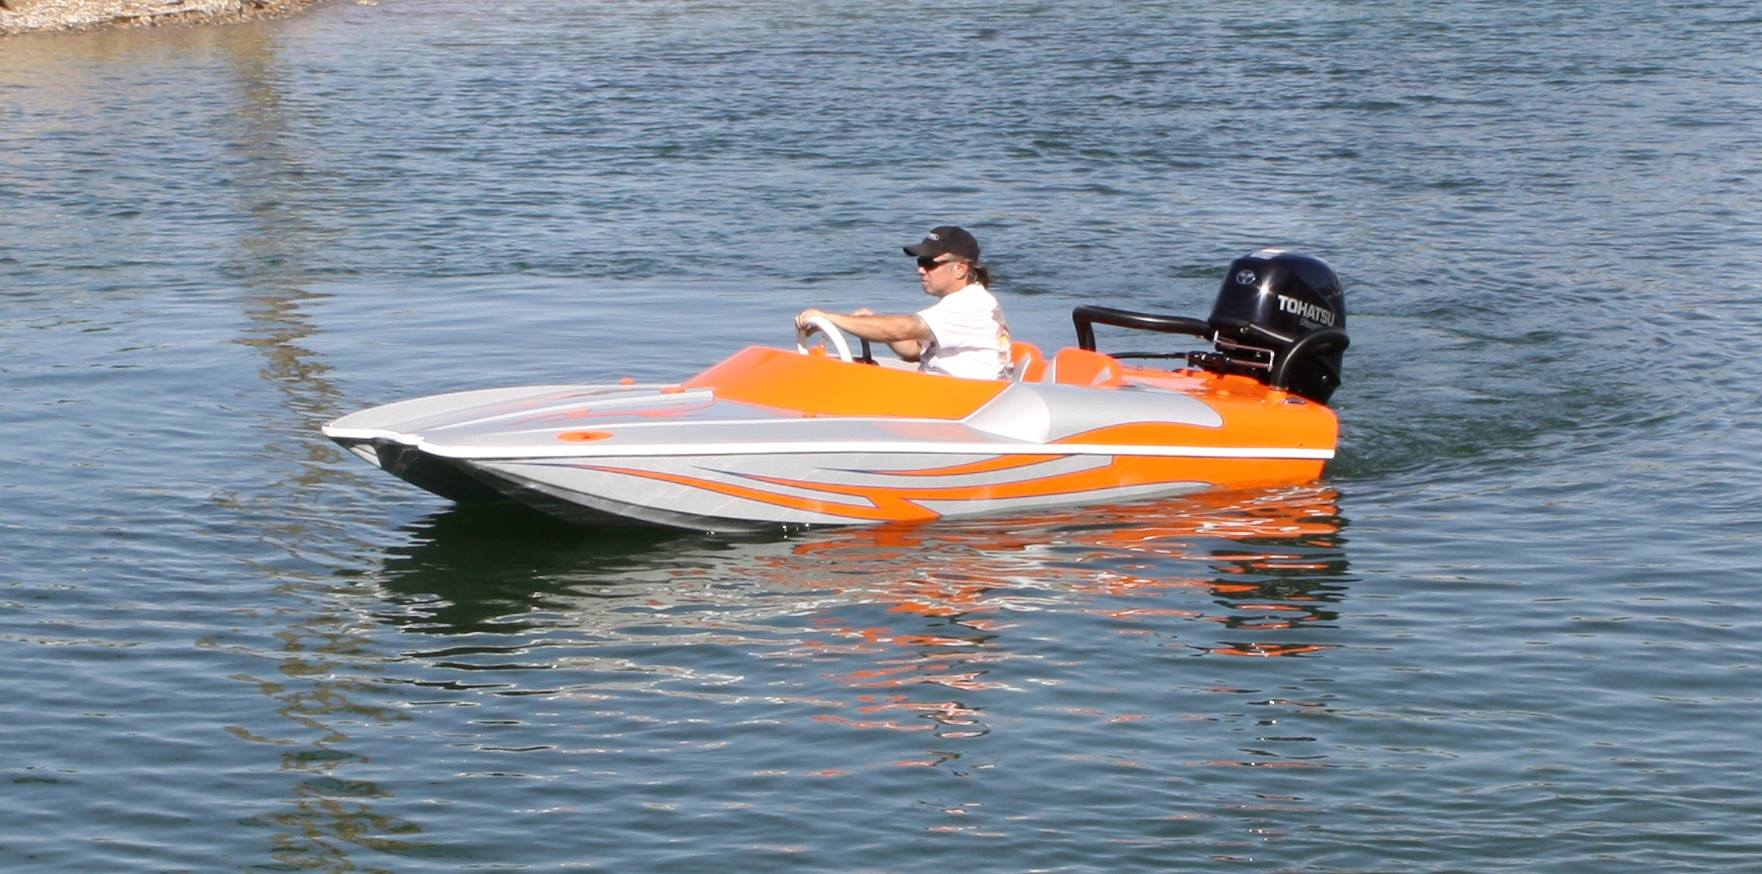 Jet Boats For Sale >> Mini Boat Company For Sale - Twisted Liquid Marine | Boat Design Net